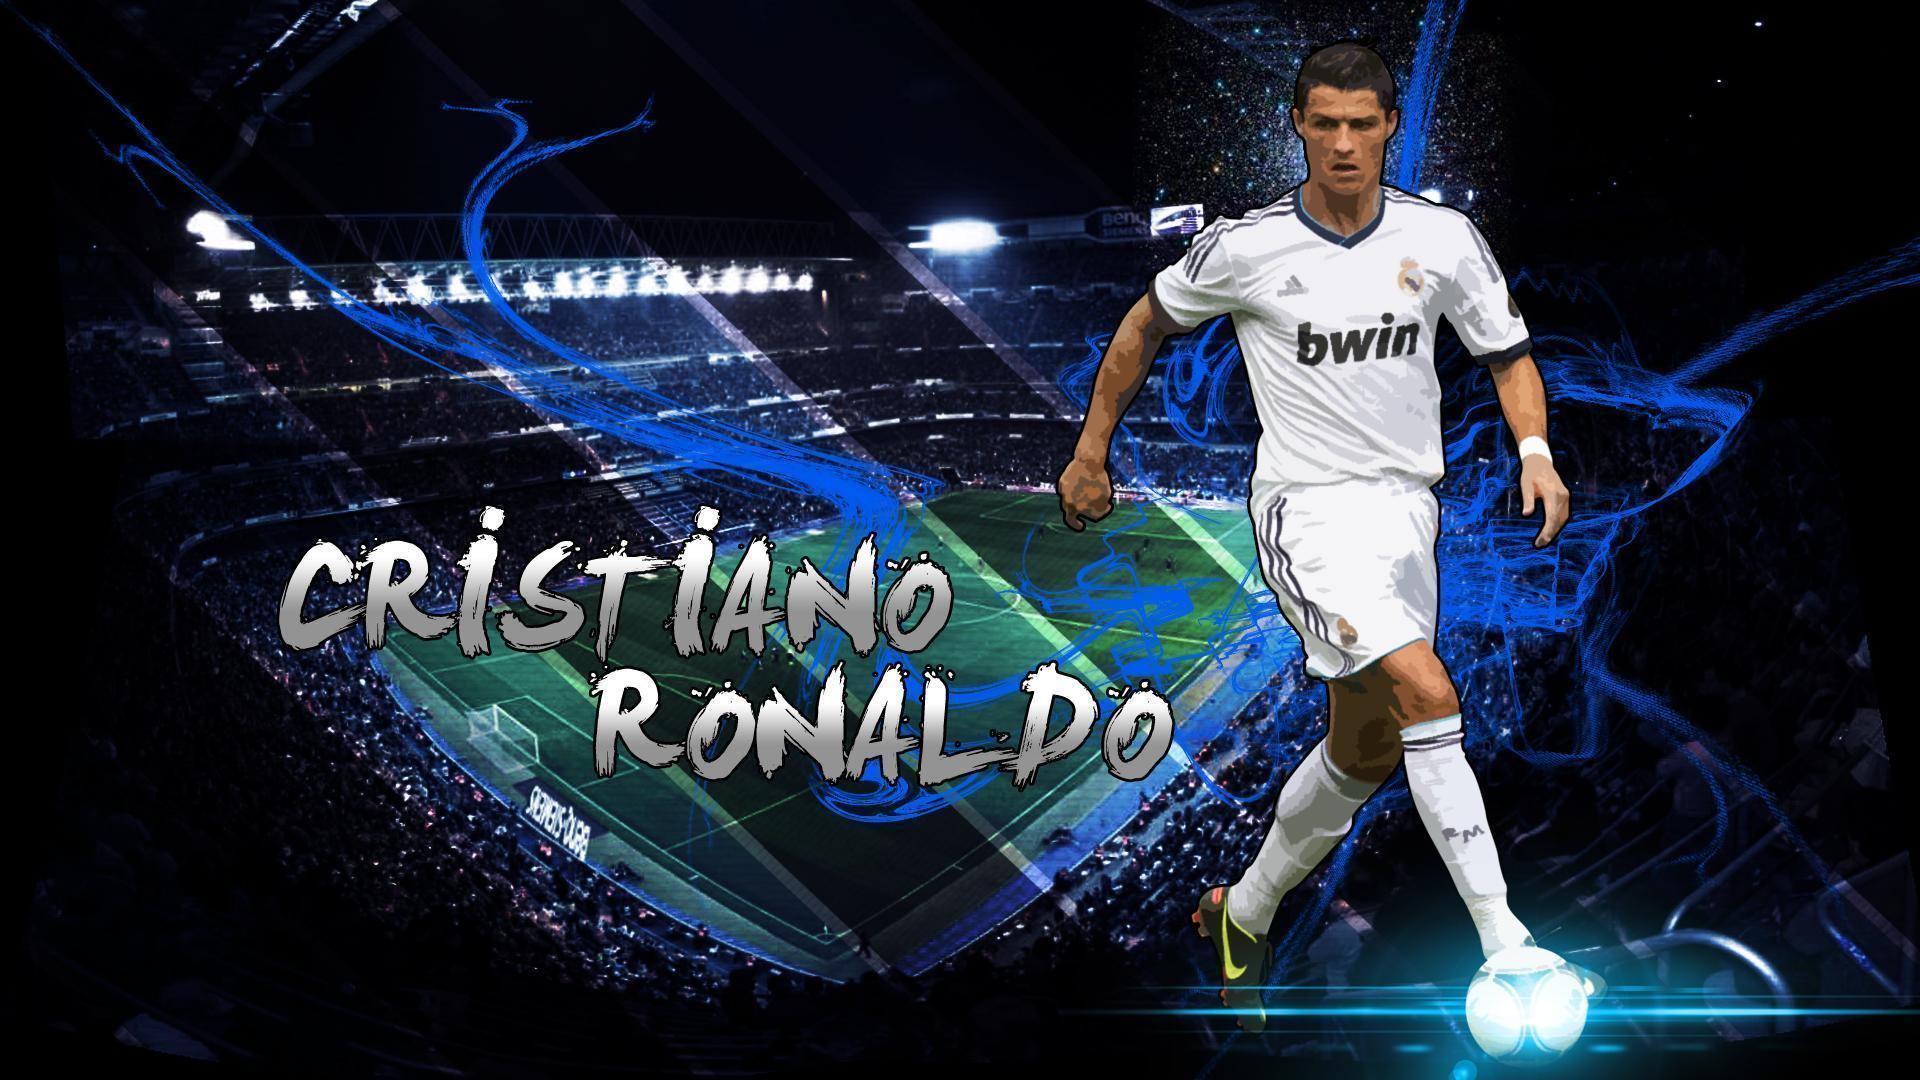 Real Madrid D Fly Emirates Cristiano Ronaldo Wallpapers 2015 Nike Wallpaper Cave